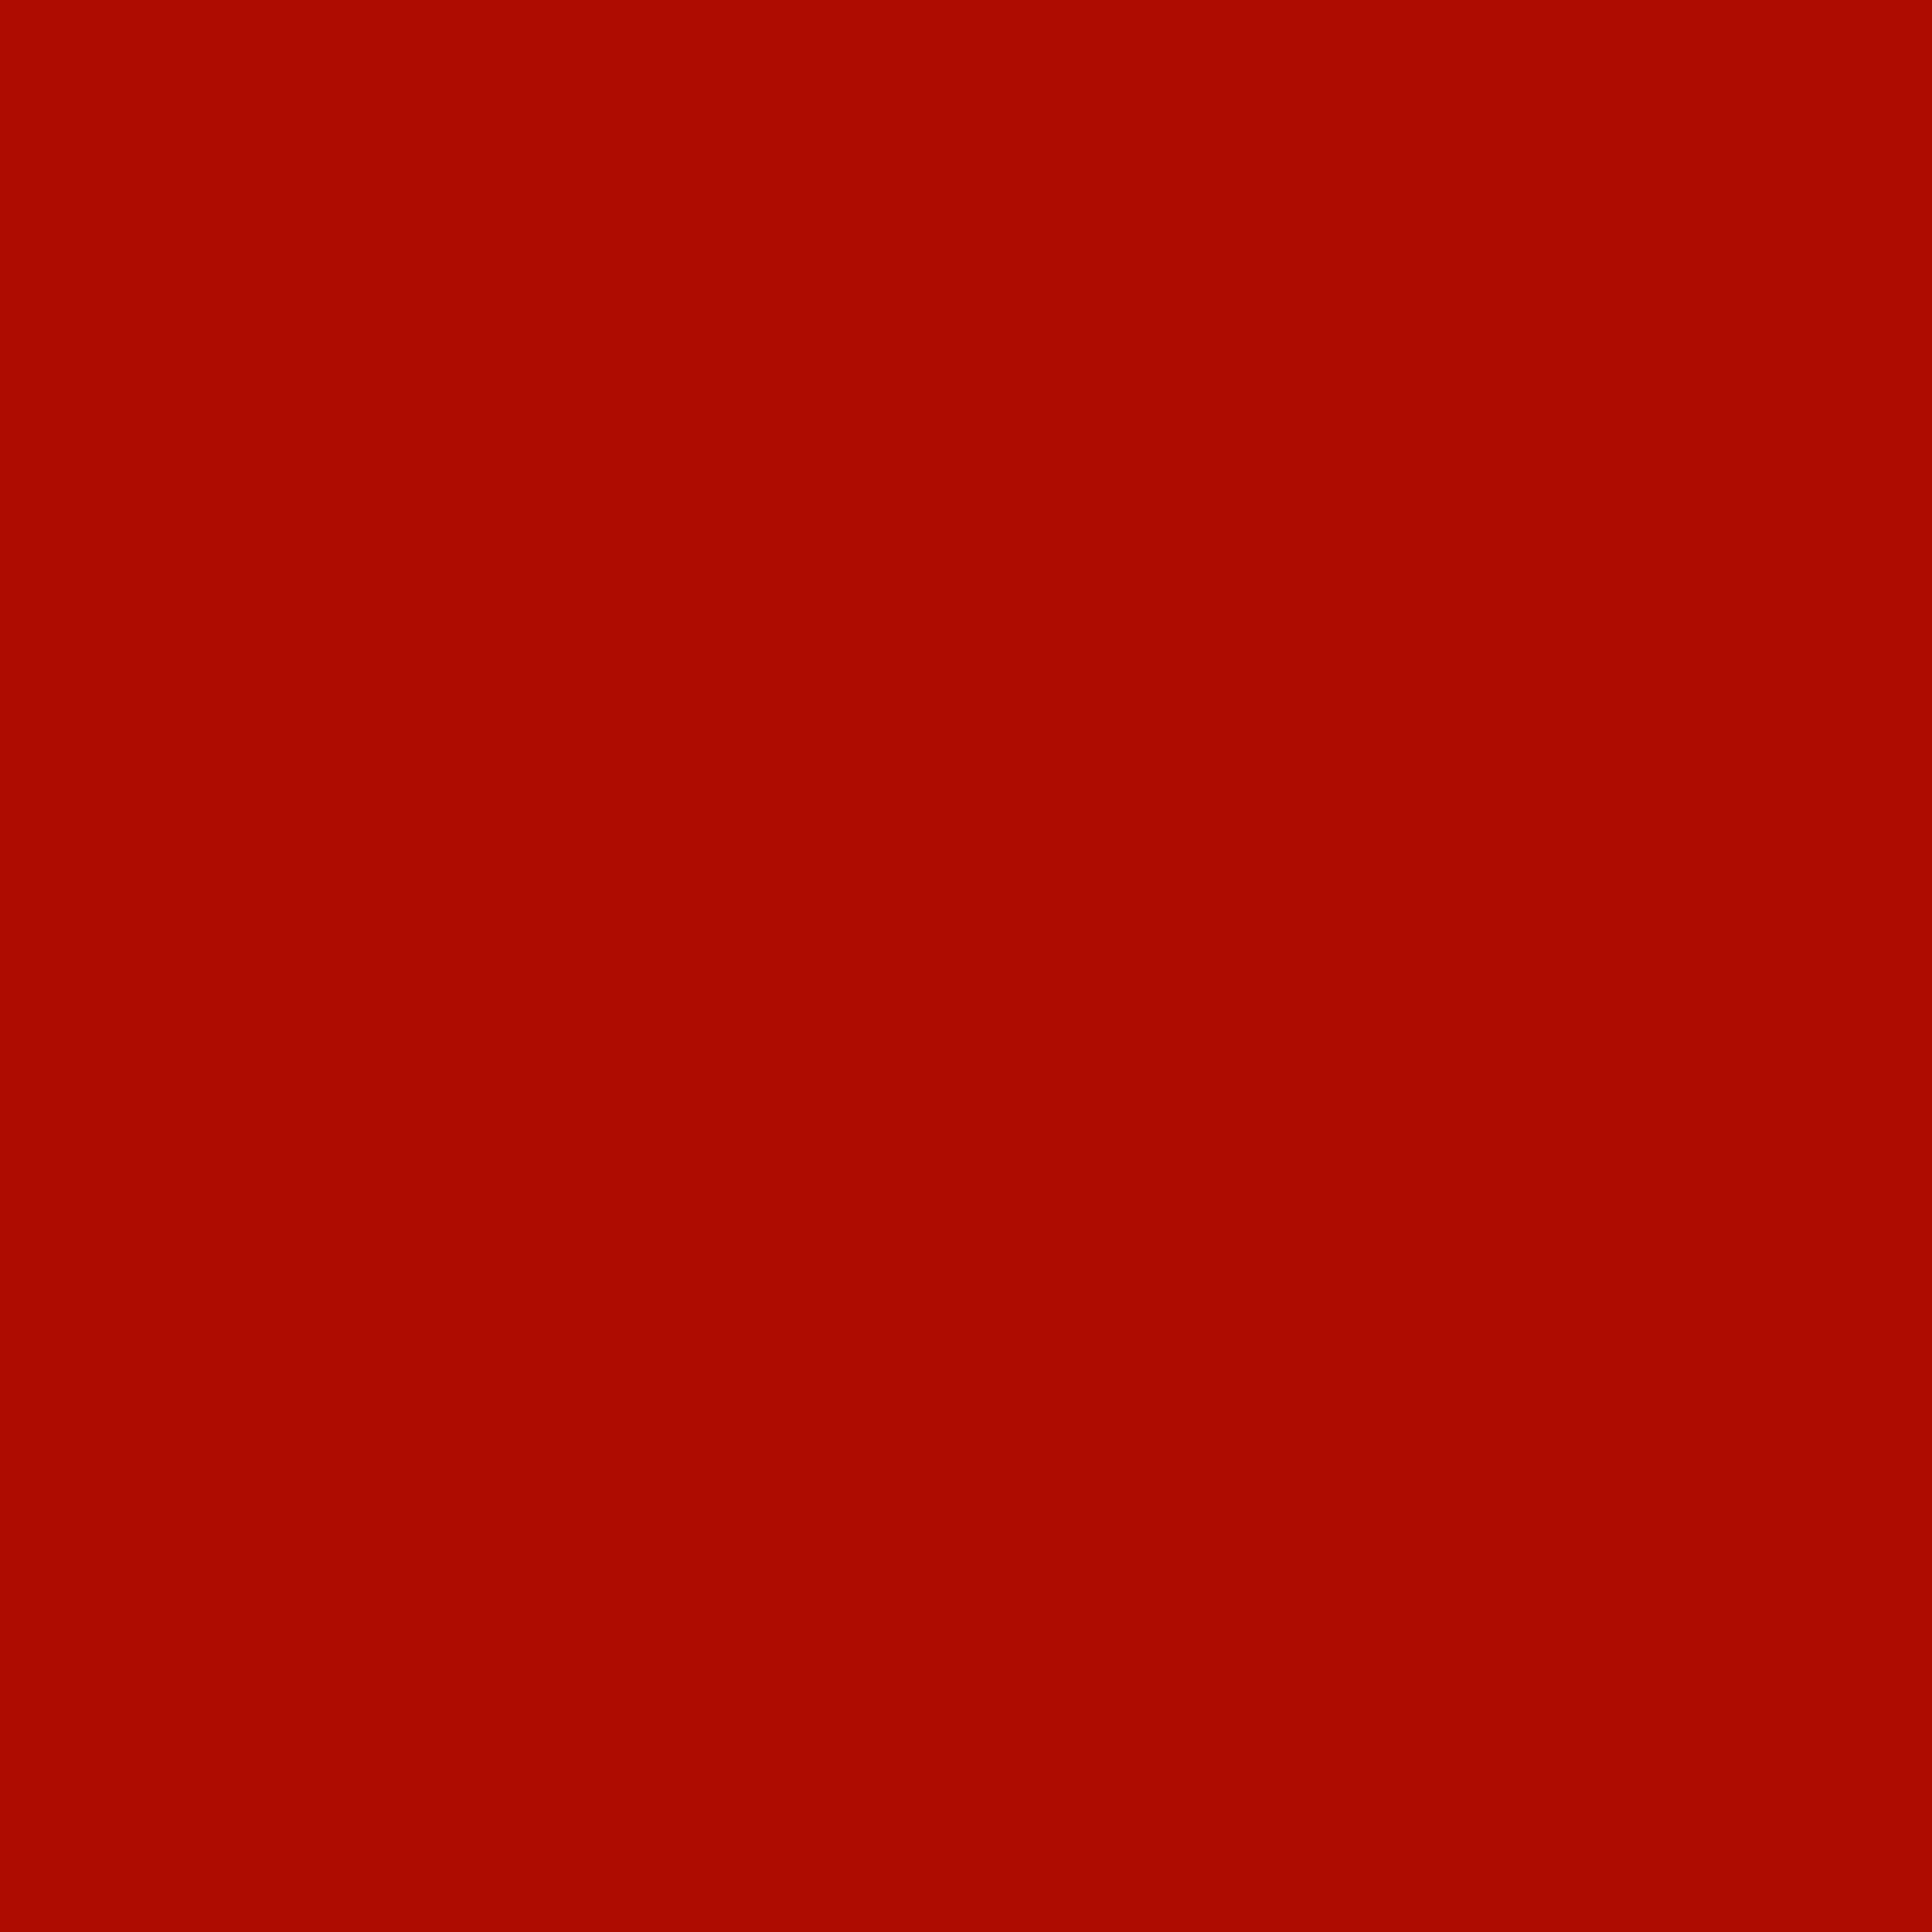 3600x3600 Mordant Red 19 Solid Color Background